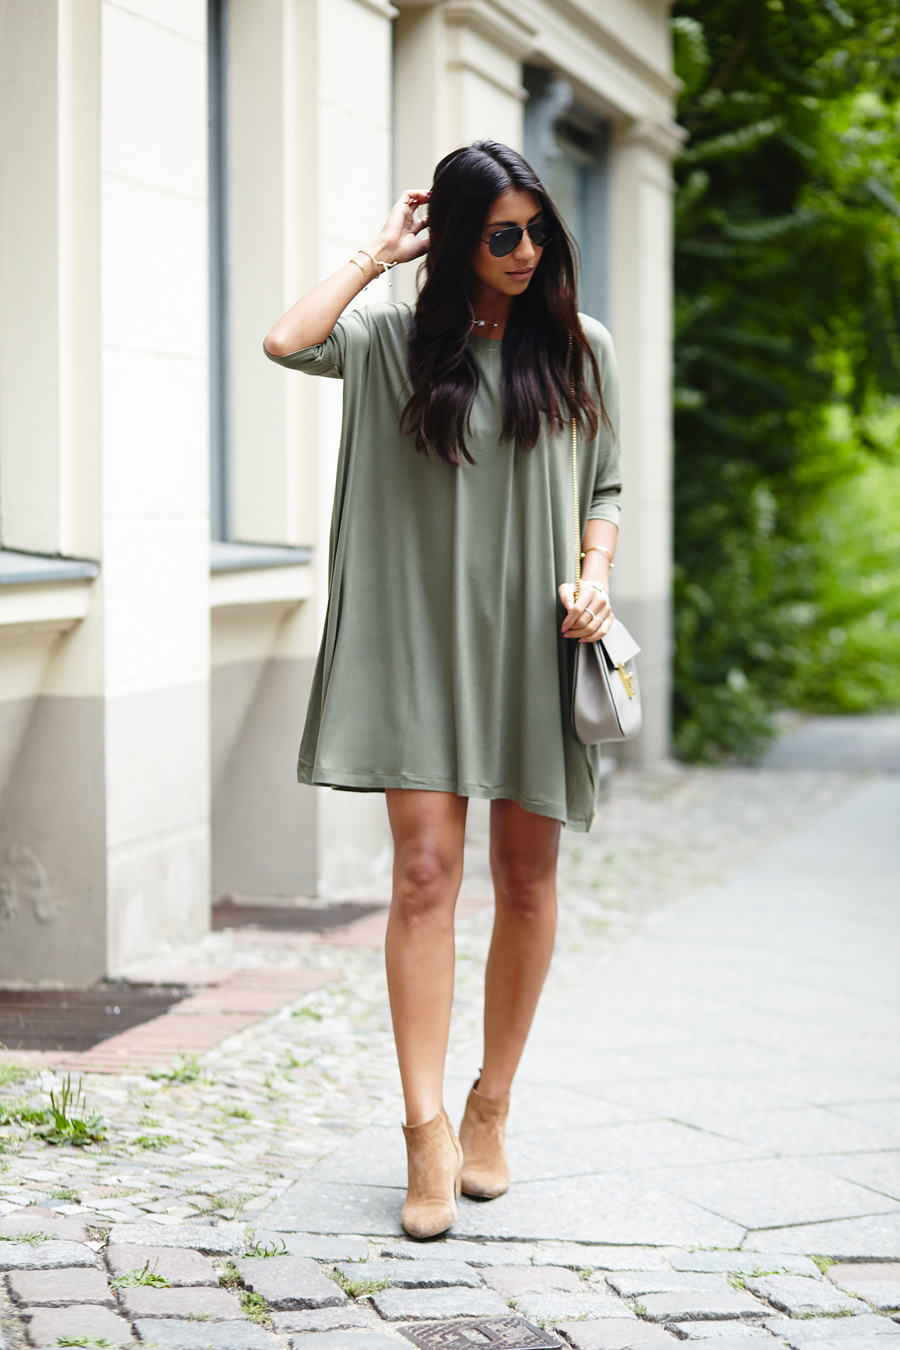 098779a1e8 Cute Casual Summer Outfits  This Is What You Should Wear - Just The ...